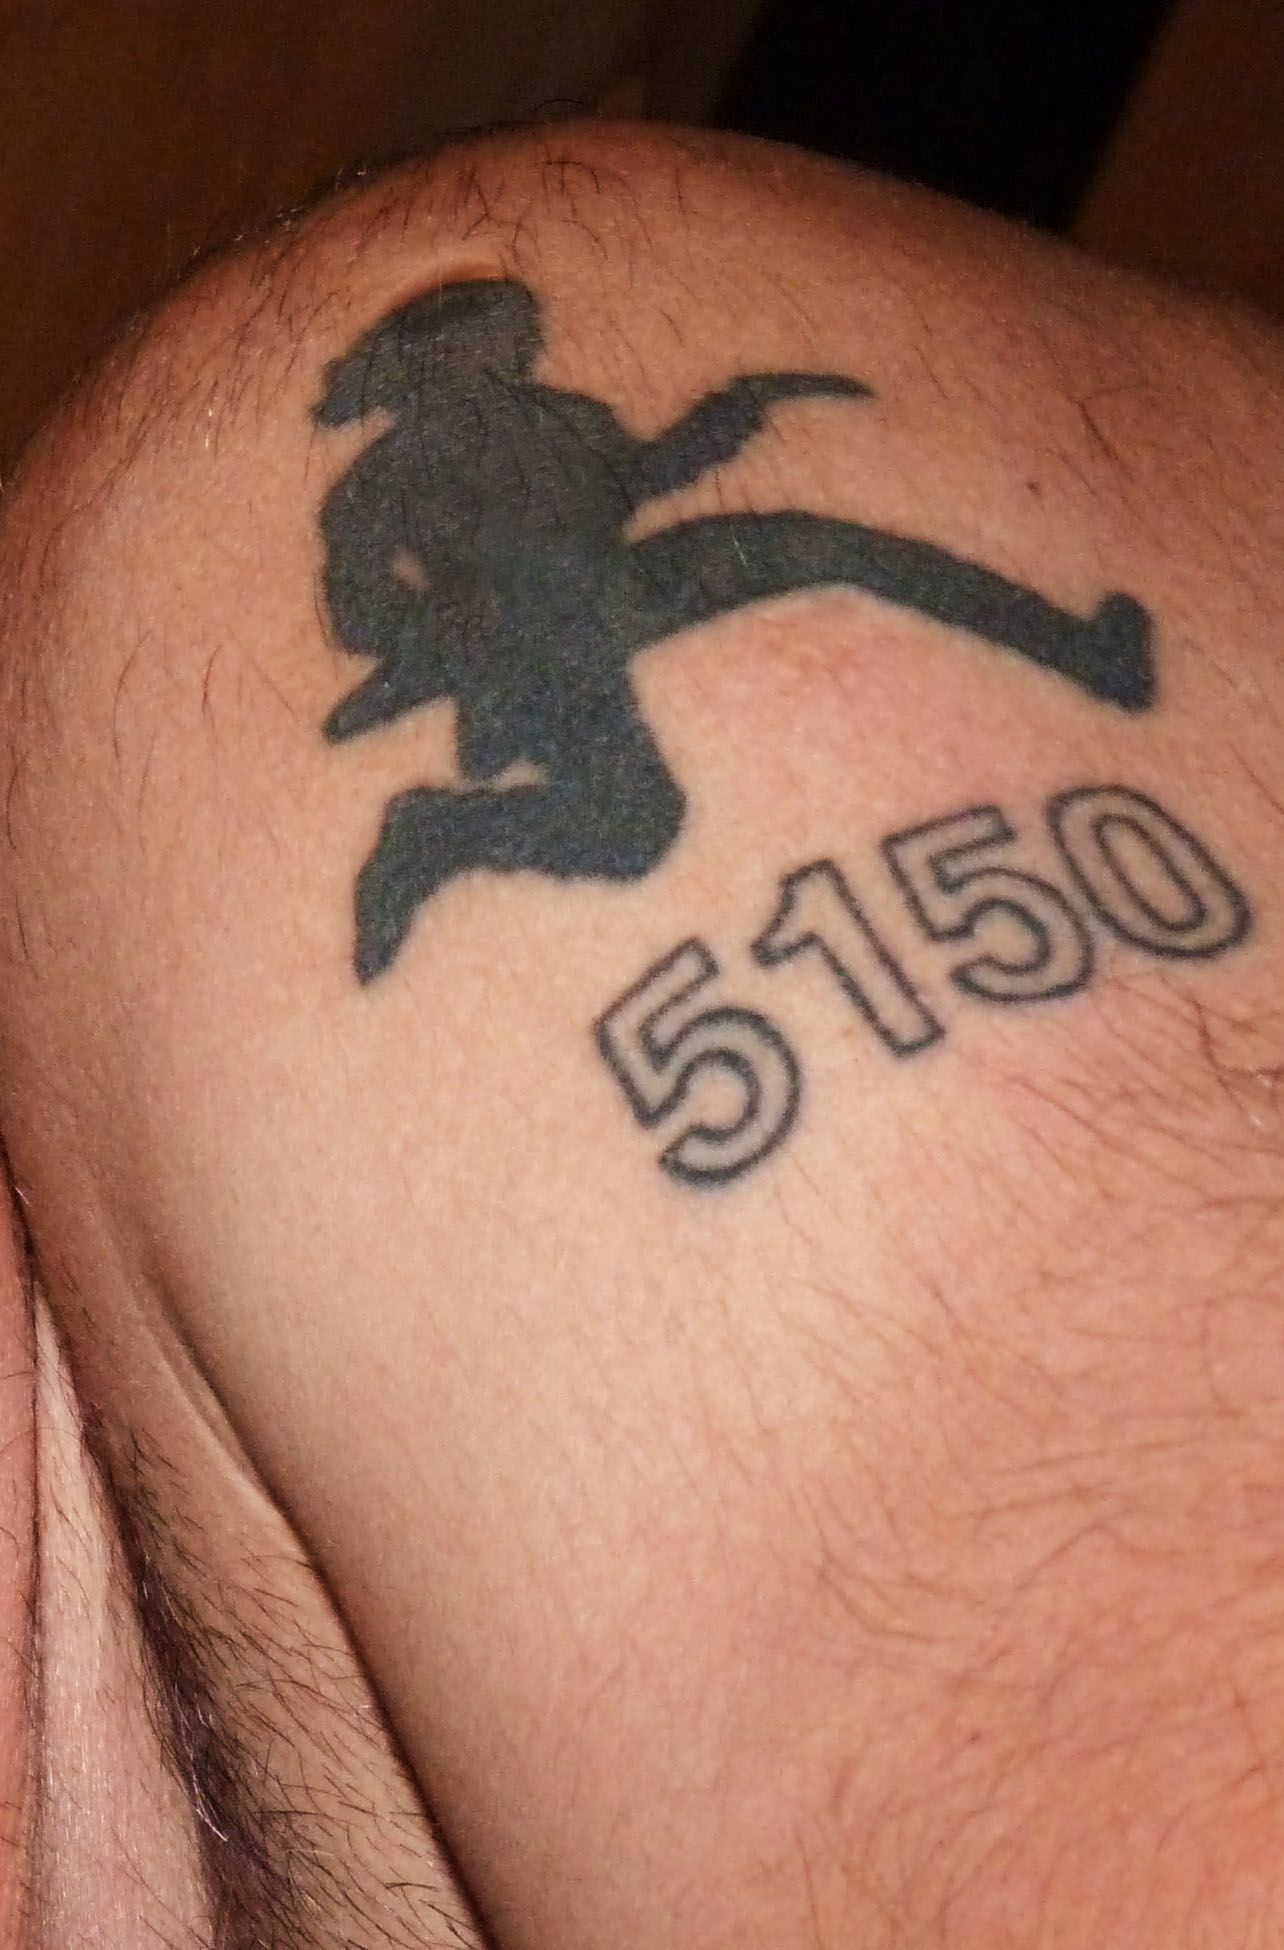 Van halen 5150 tattoo ideas pinterest for Tattoo van halen